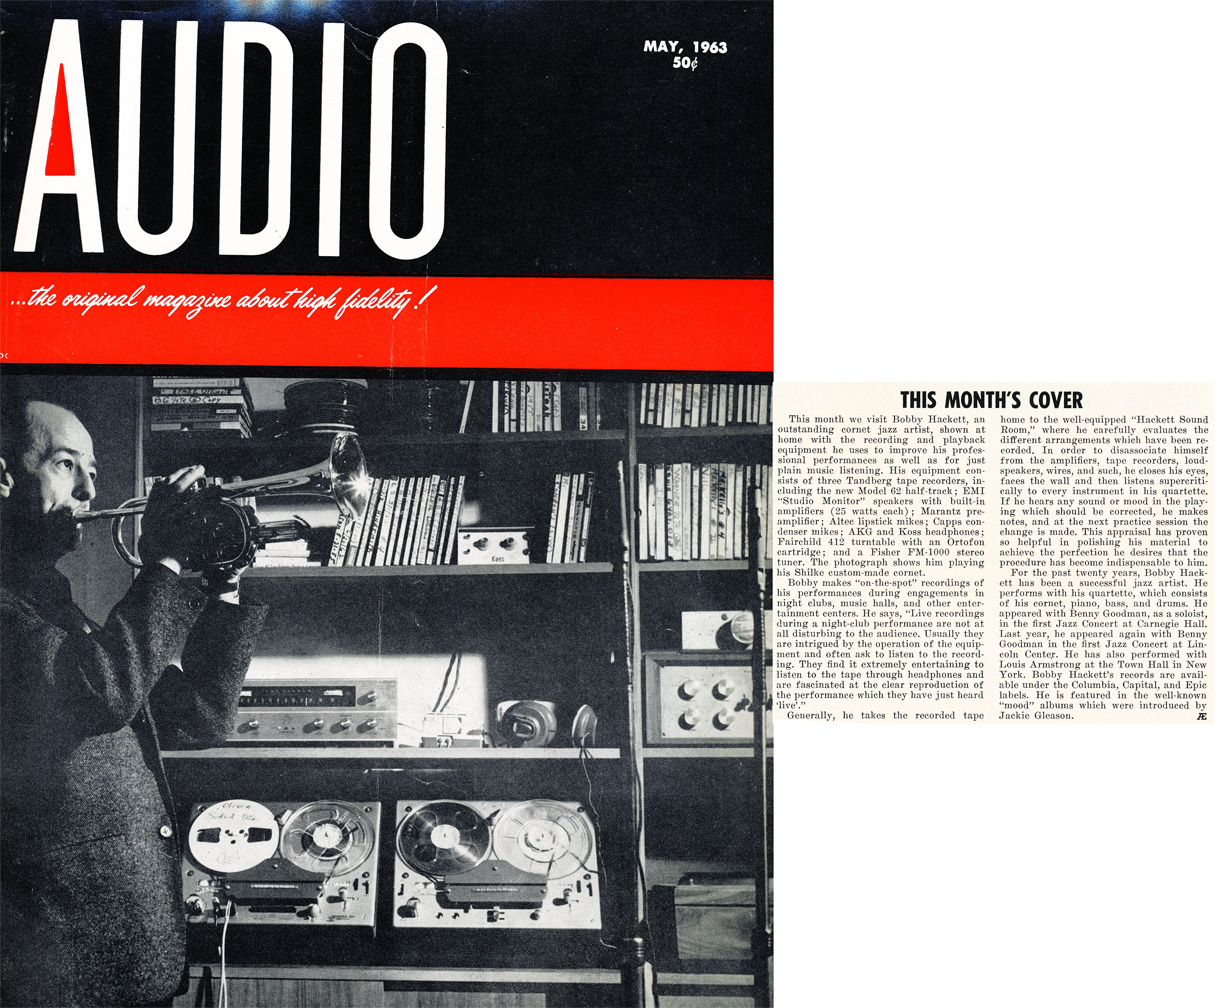 1963 April cover of the Audio Engineering magazine in Reel2ReelTexas.com's vintage recording collection